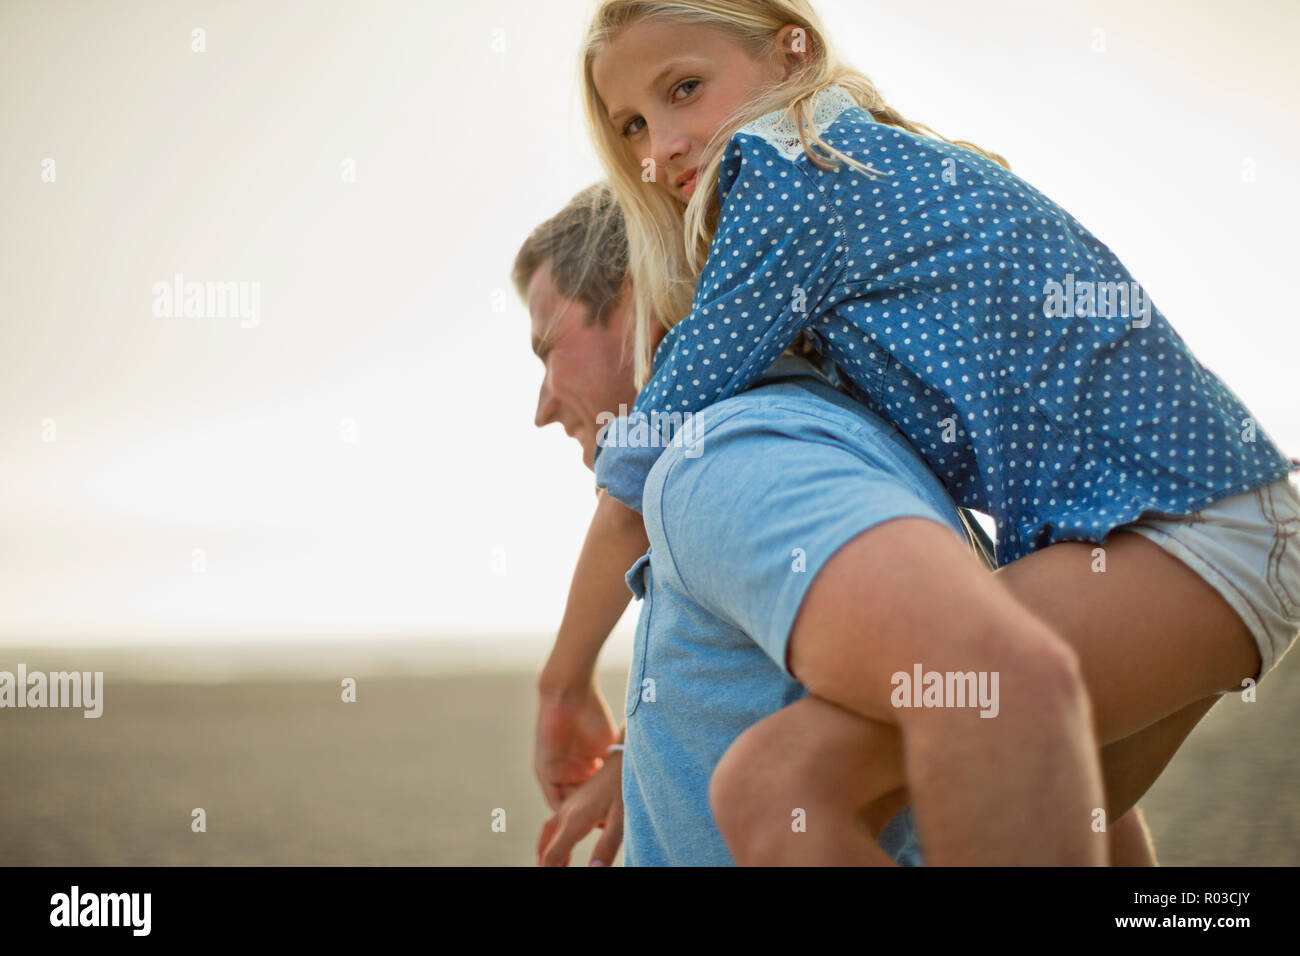 Portrait of a happy young girl being carried on her father's back. - Stock Image